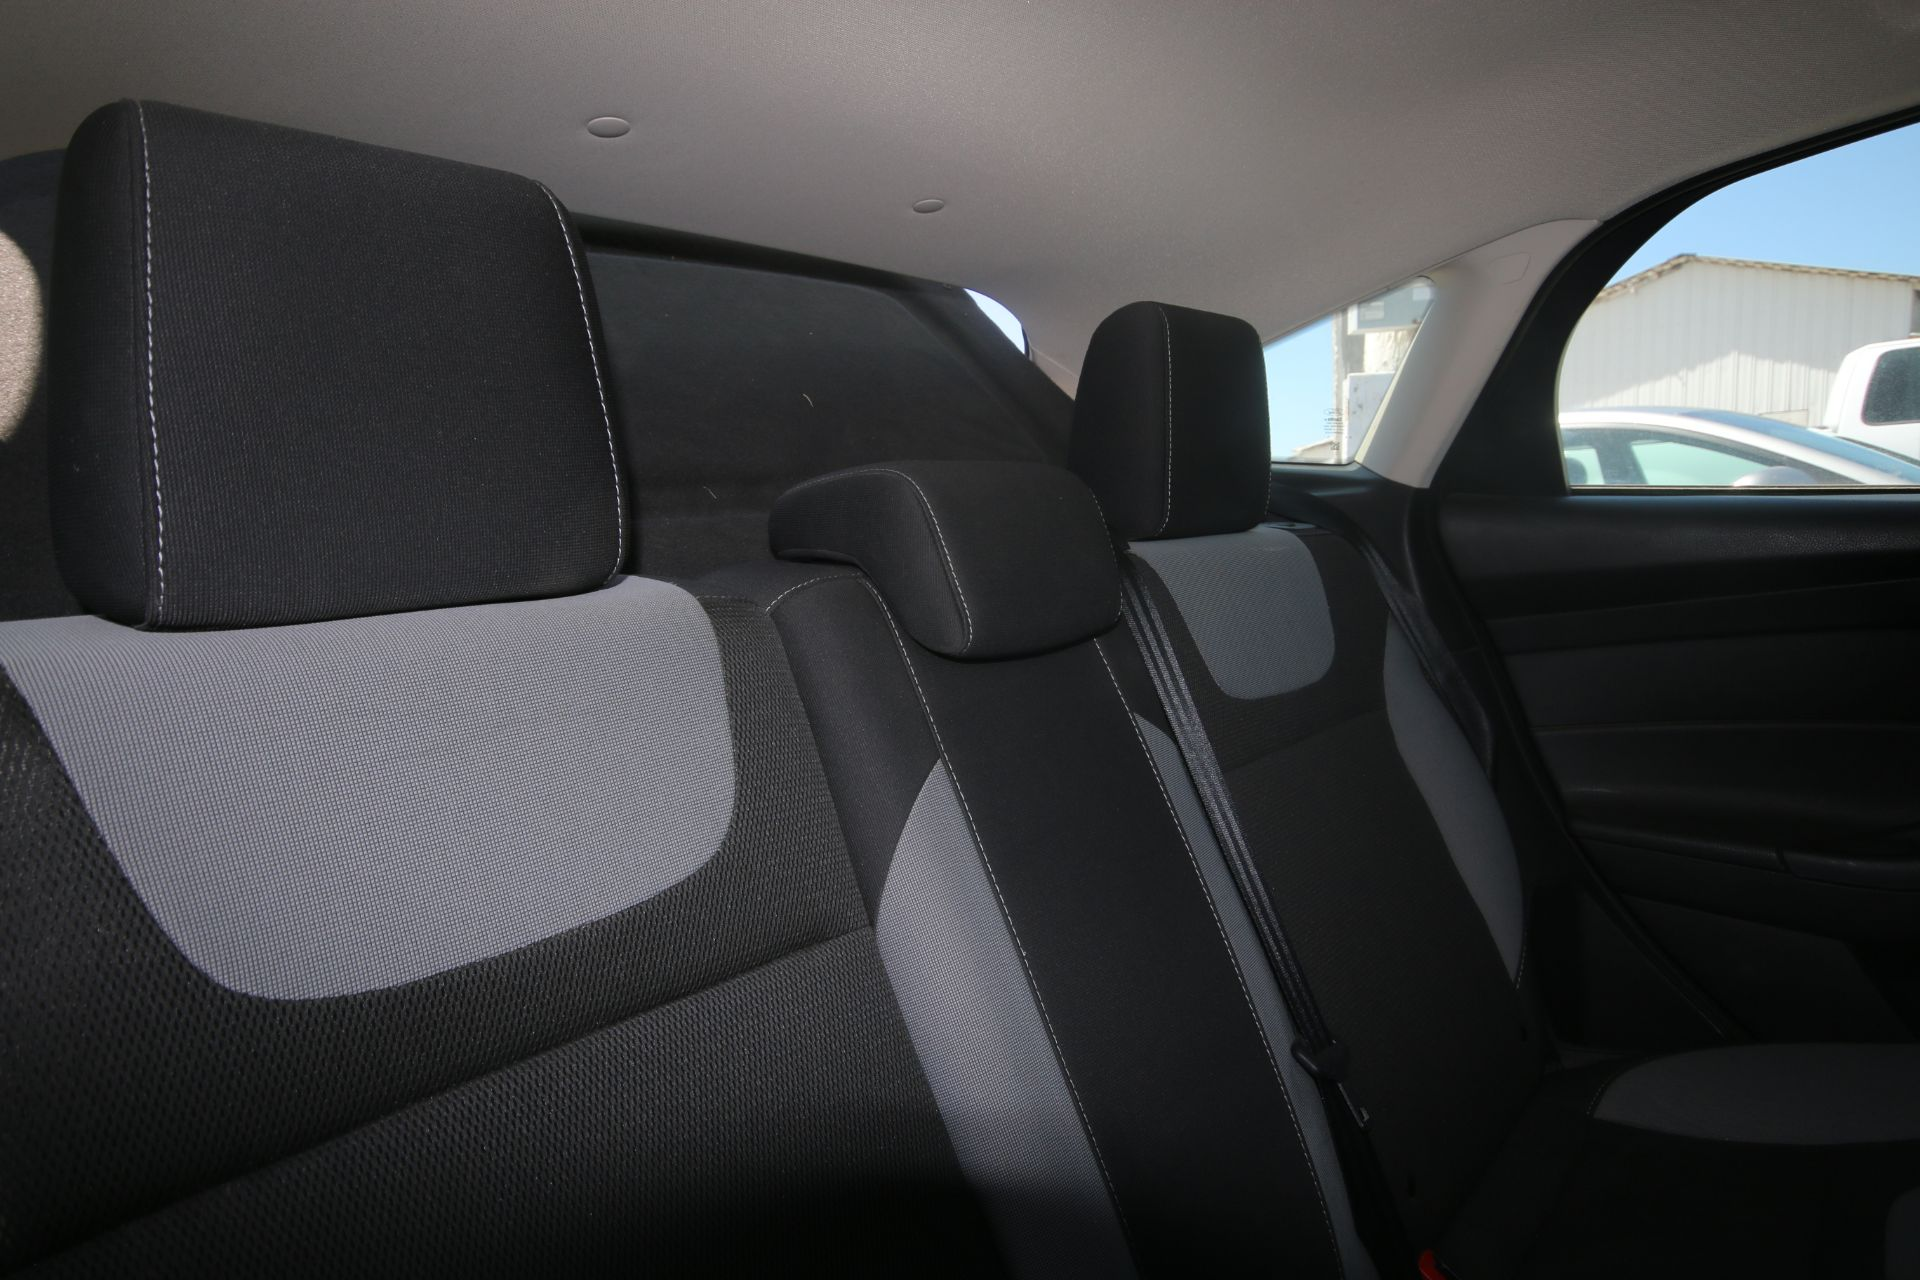 2012 White Ford Focus SE Hatchback 4D, VIN #: 1FAHP3K27CL423326, with 116,017 Miles, with 4-Doors, - Image 8 of 26